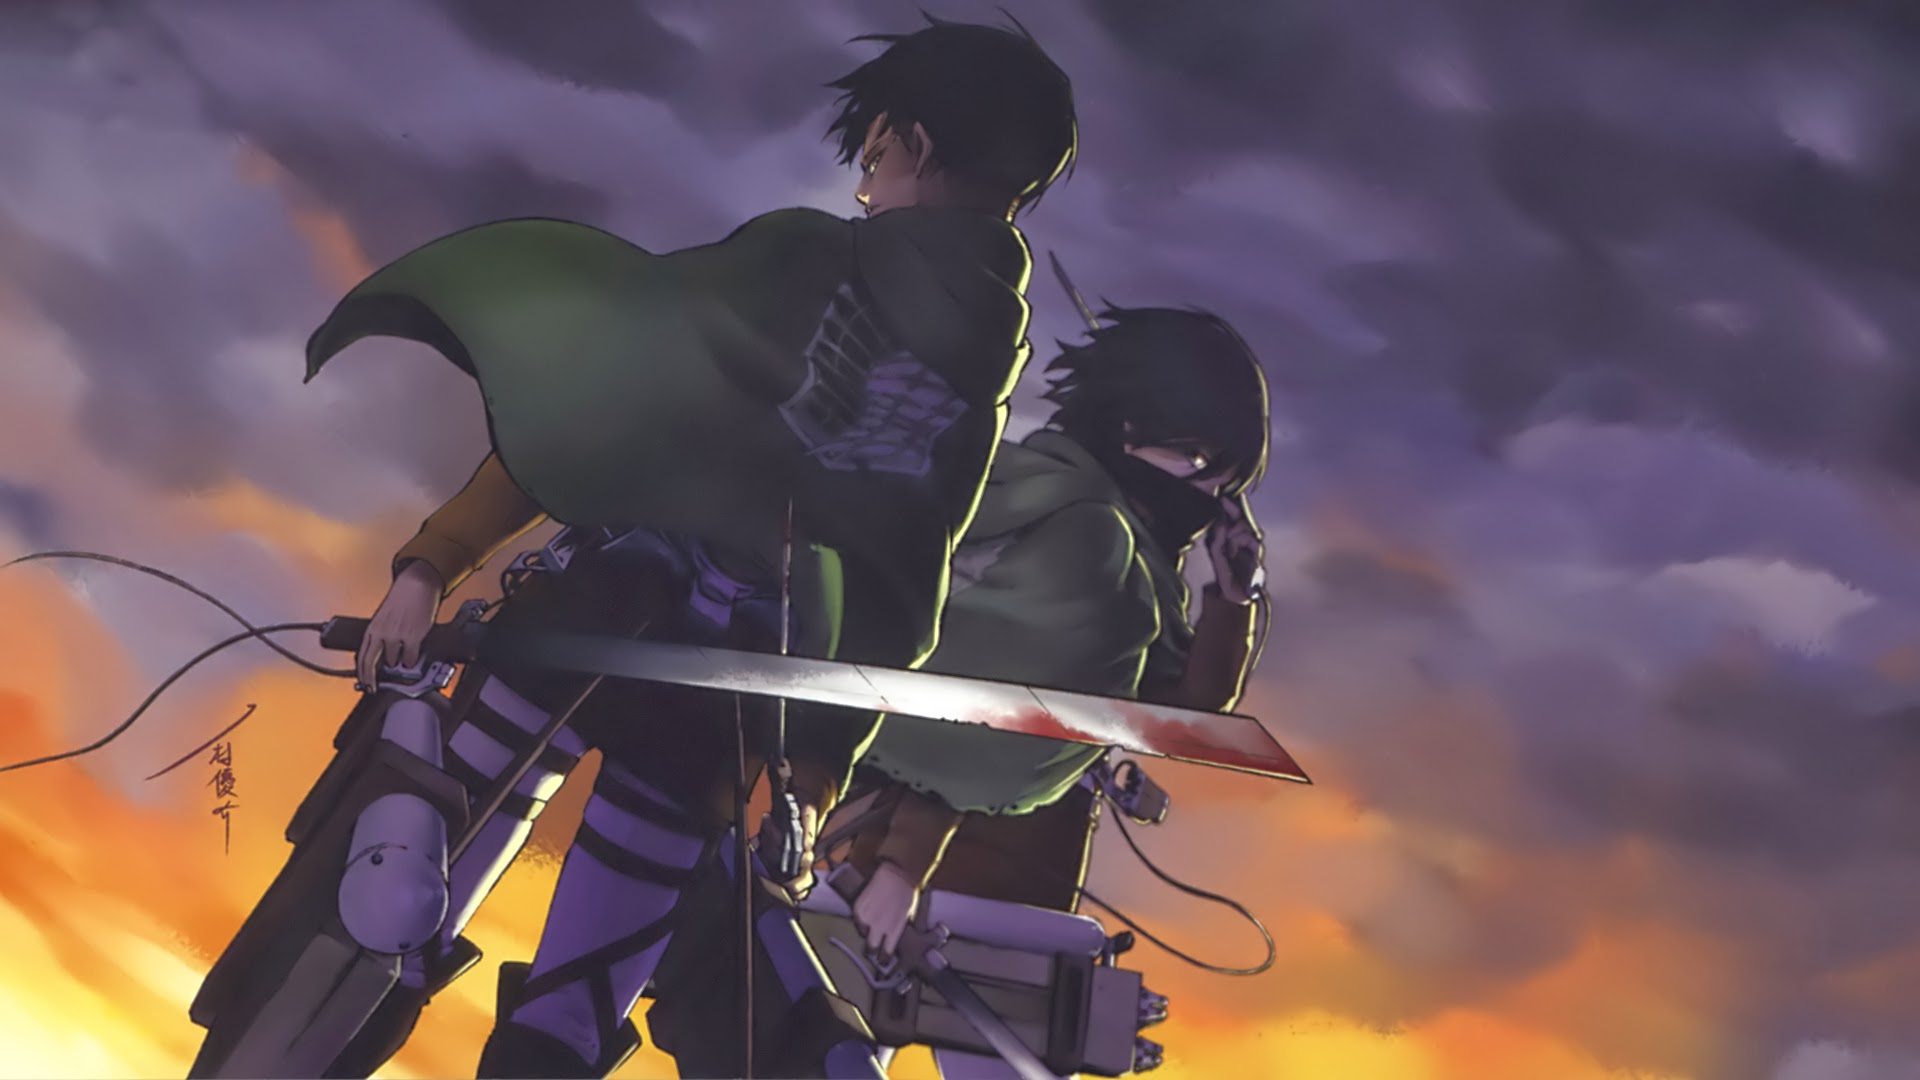 levi mikasa ackerman attack on titan shingeki no kyojin anime hd 1920x1080